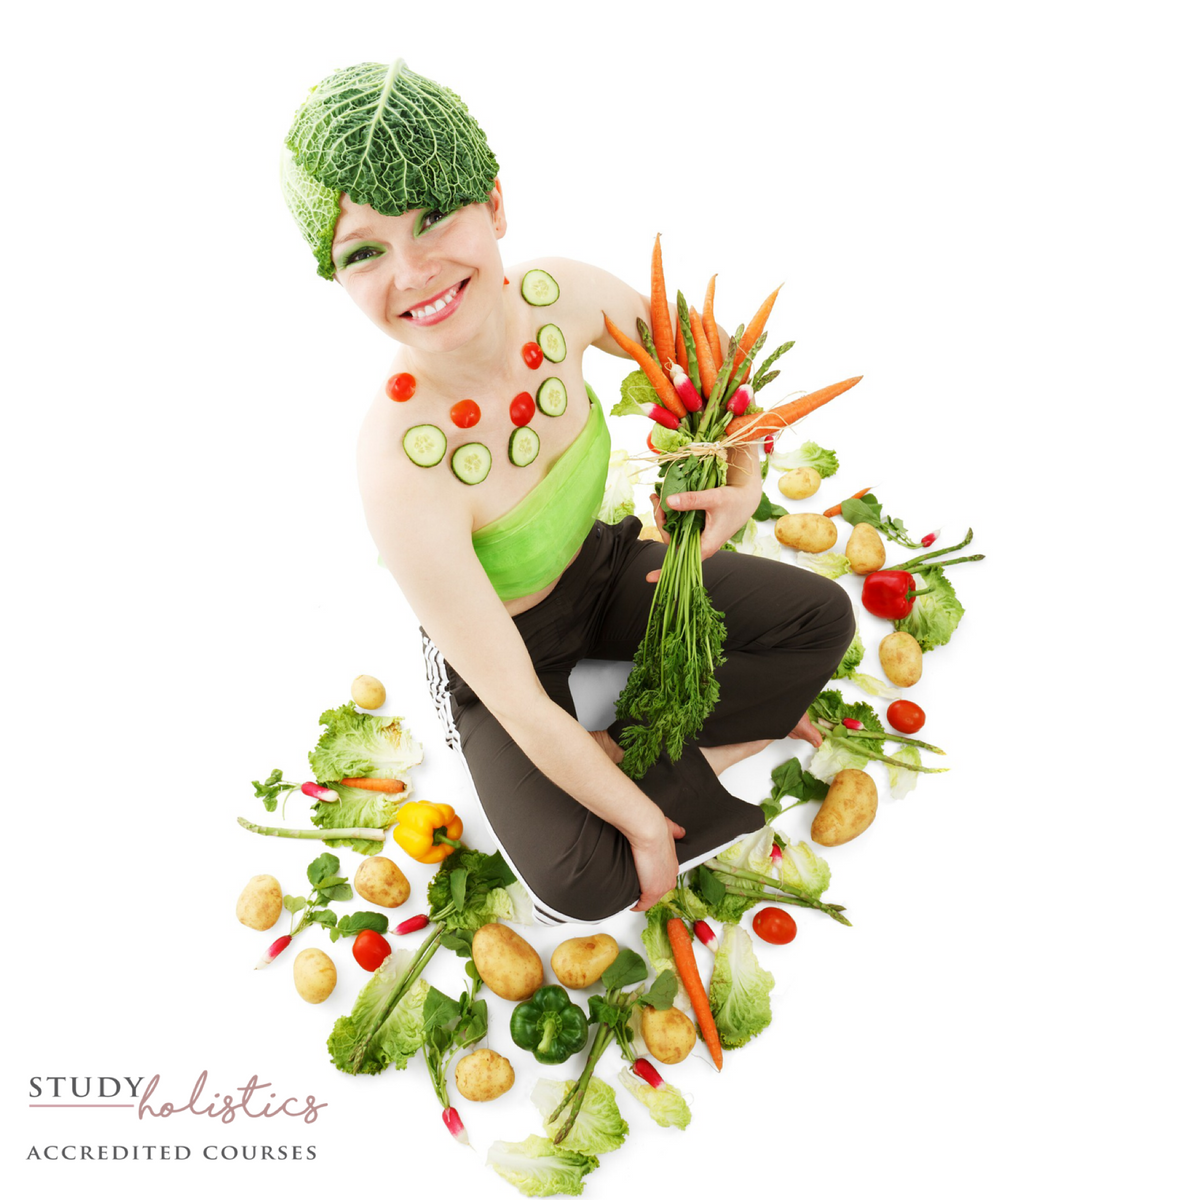 Online Diet and Nutrition Courses | Accredited Distance